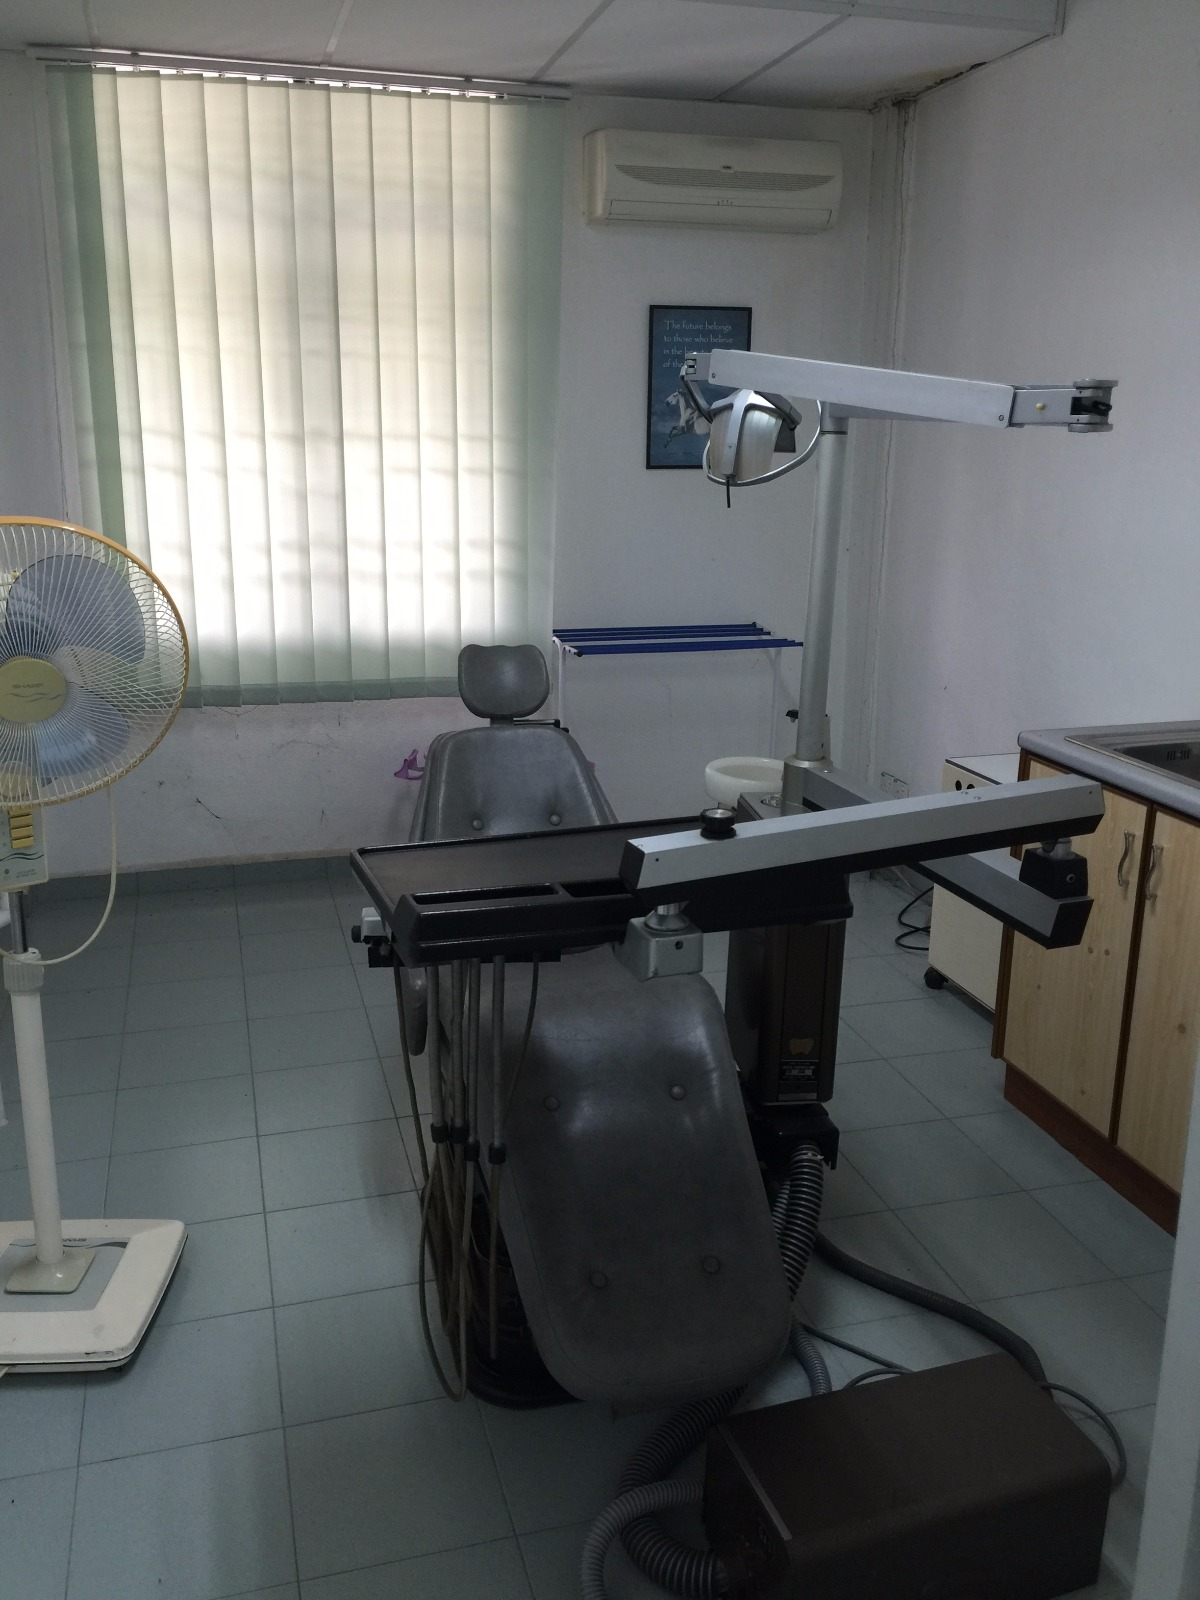 balik-pulau-clinic-for-sale-5